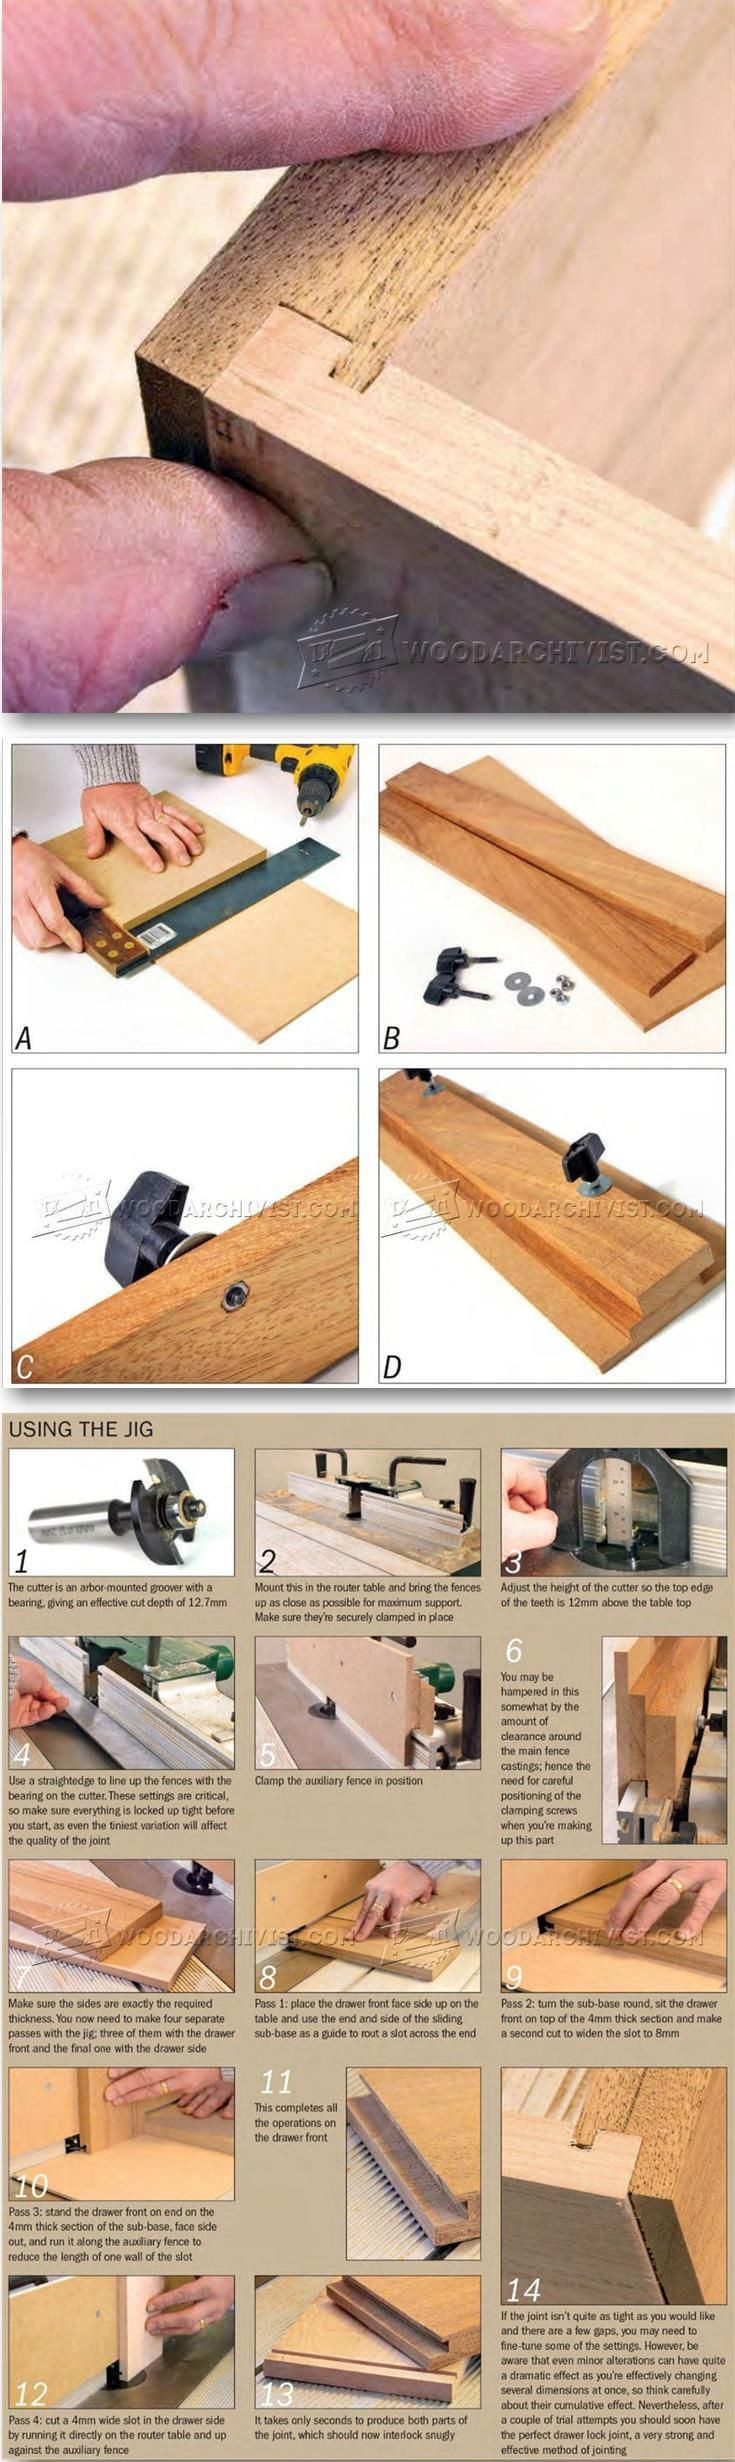 Drawer Lock Joint Jig - Drawer Construction and Techniques | WoodArchivist.com